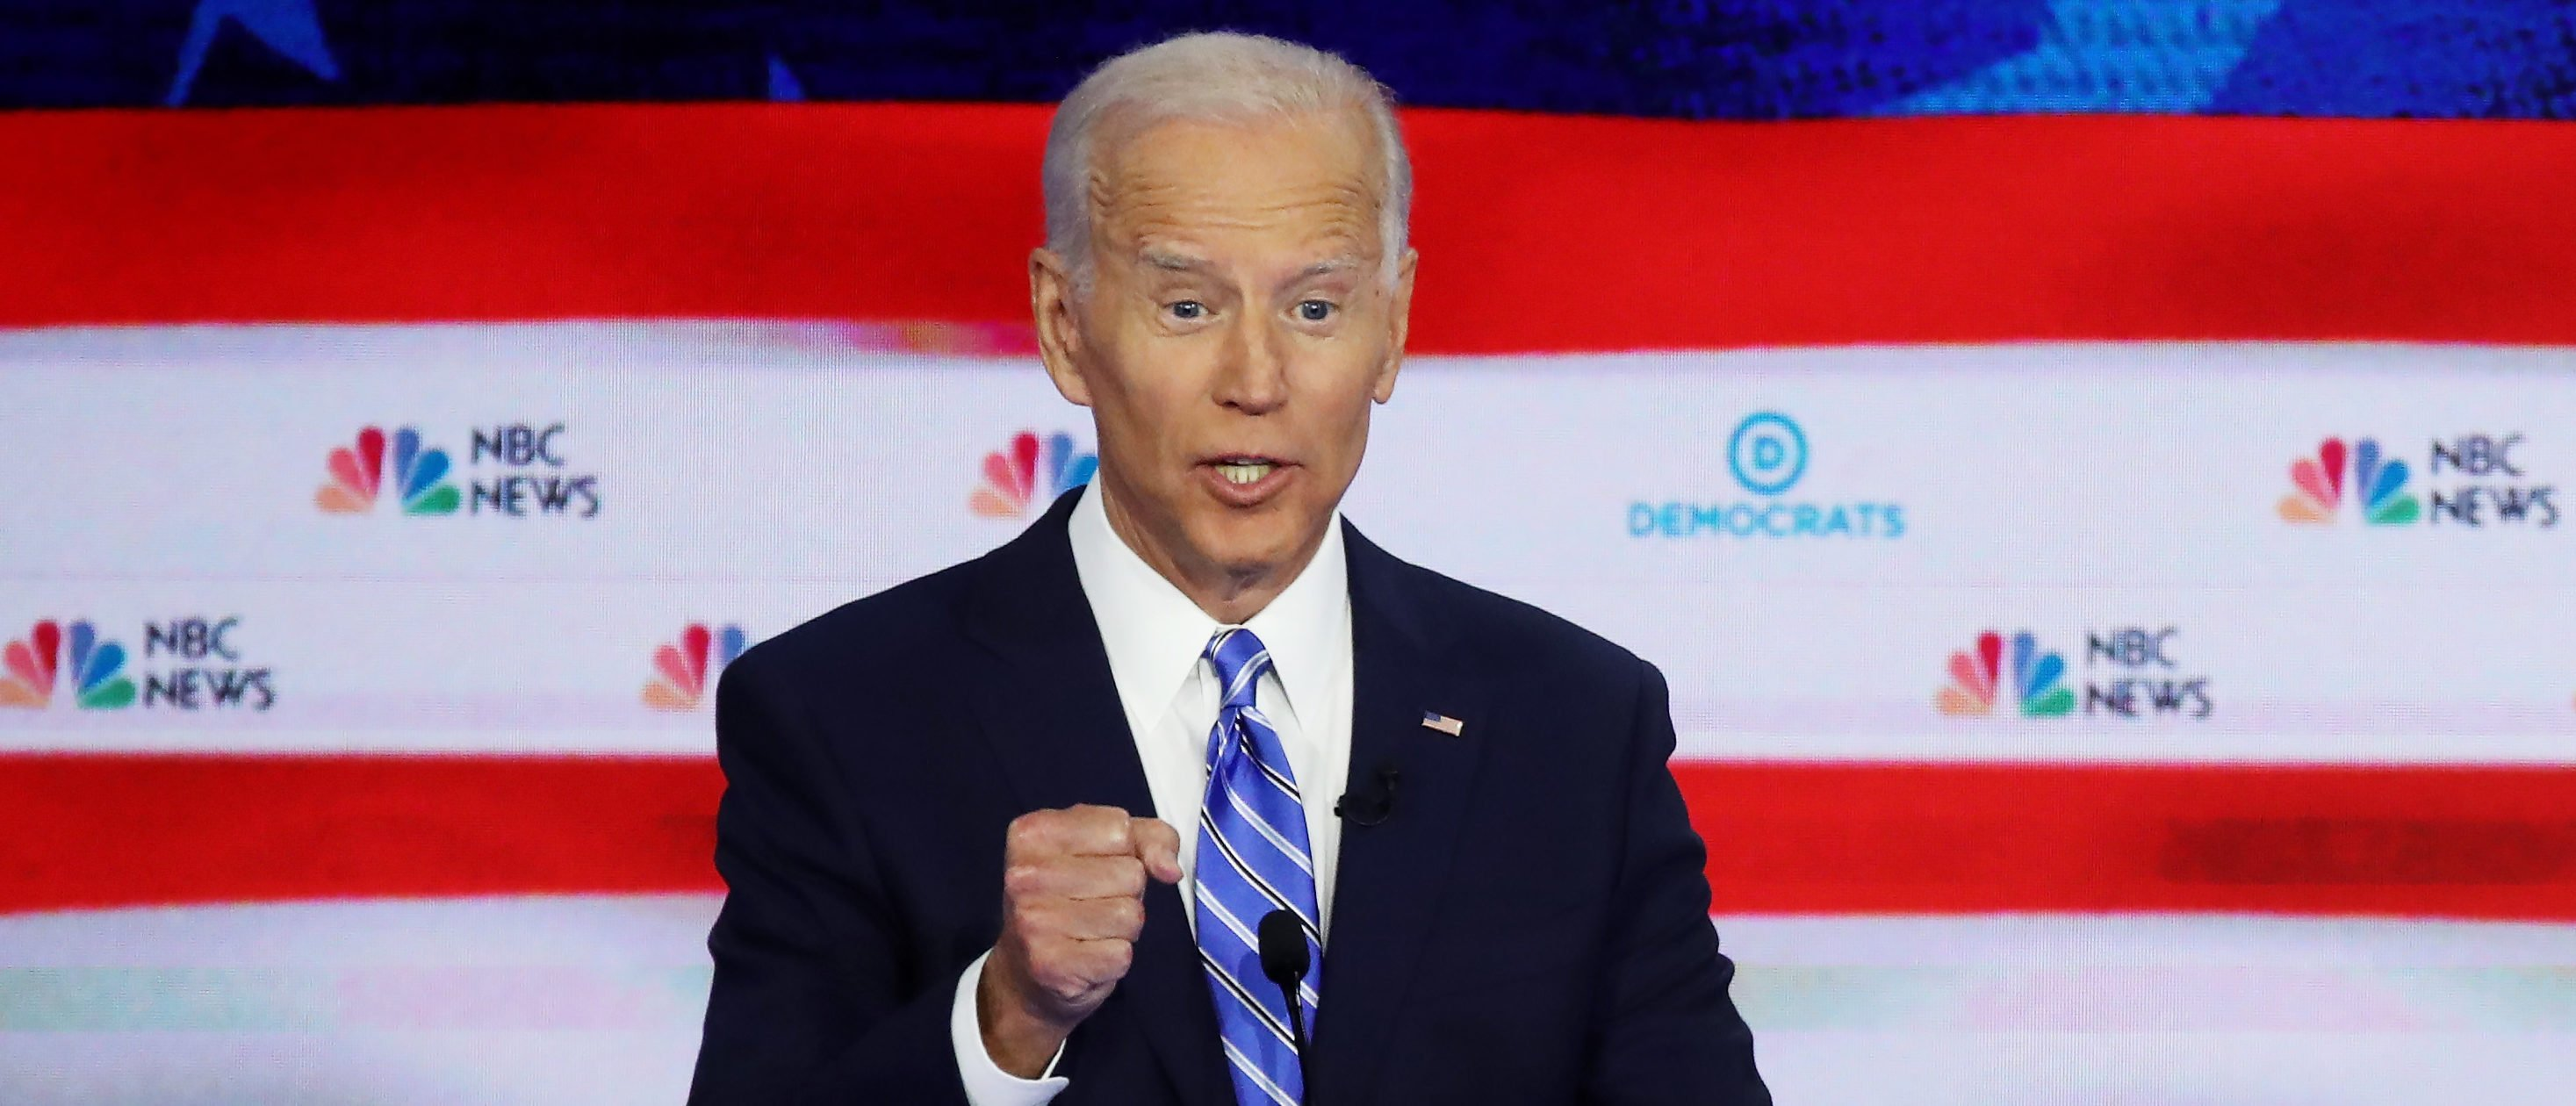 Biden: Don't Waste Your Time Being Bipartisan, 'You've Got To Go In There And Beat Them!' | The Daily Caller